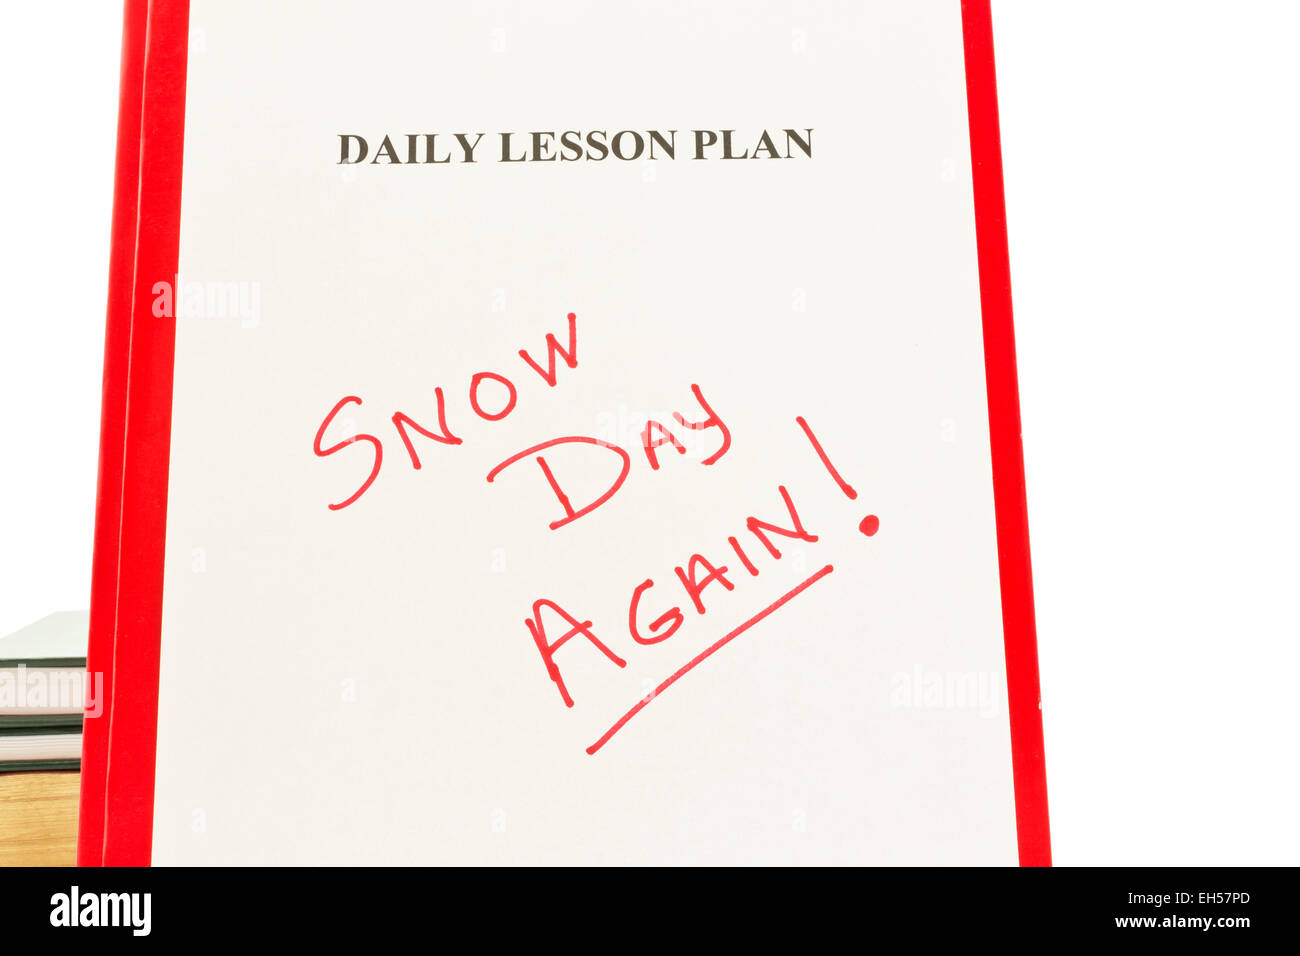 daily lesson plan sheet with handwritten snow day again in red stock